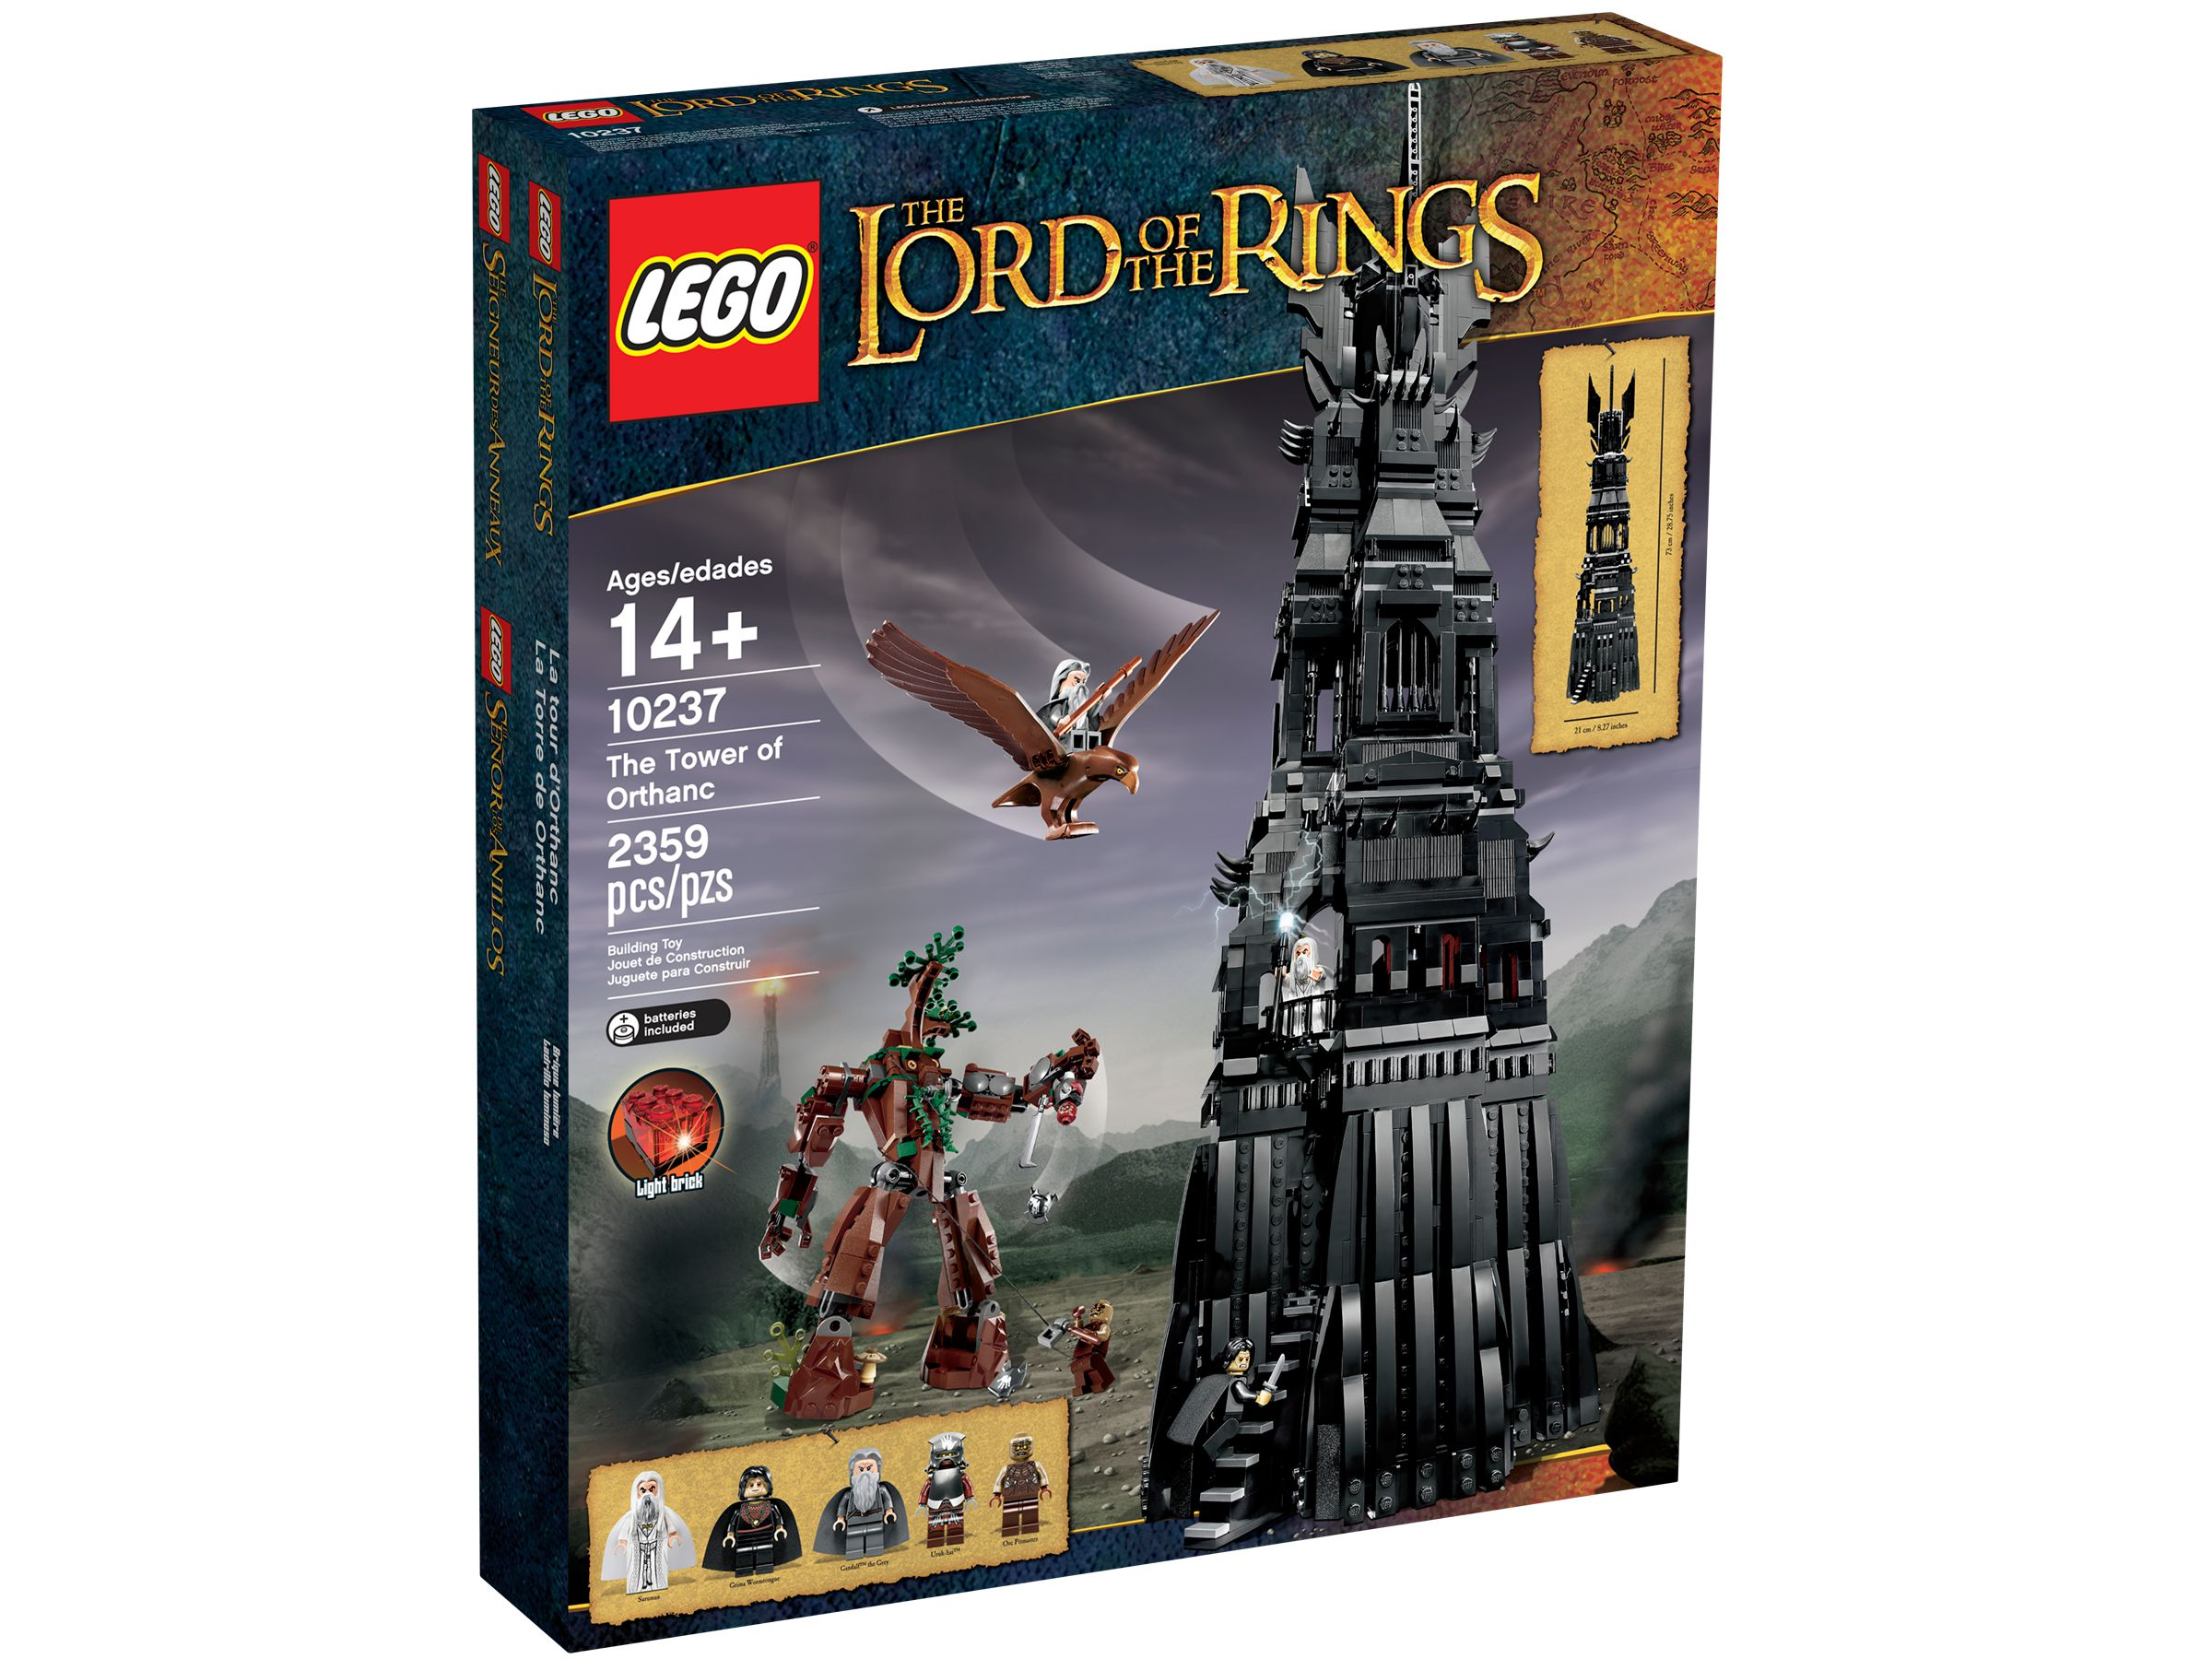 LEGO Lord of the Rings 10237 Der Turm von Orthanc™ LEGO_10237_alt1.jpg